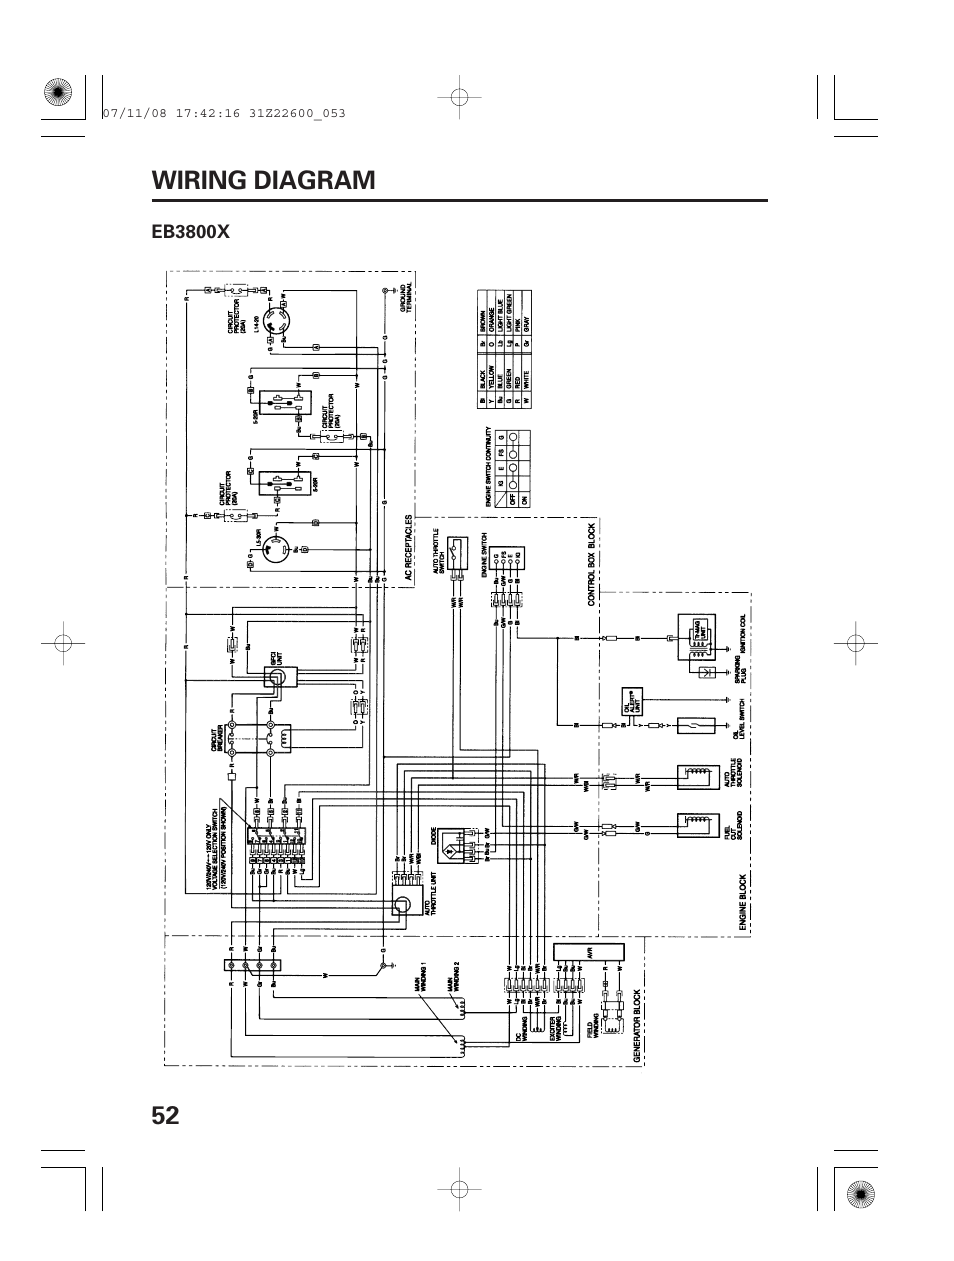 Wiring Diagram  Eb3800x  52 Wiring Diagram